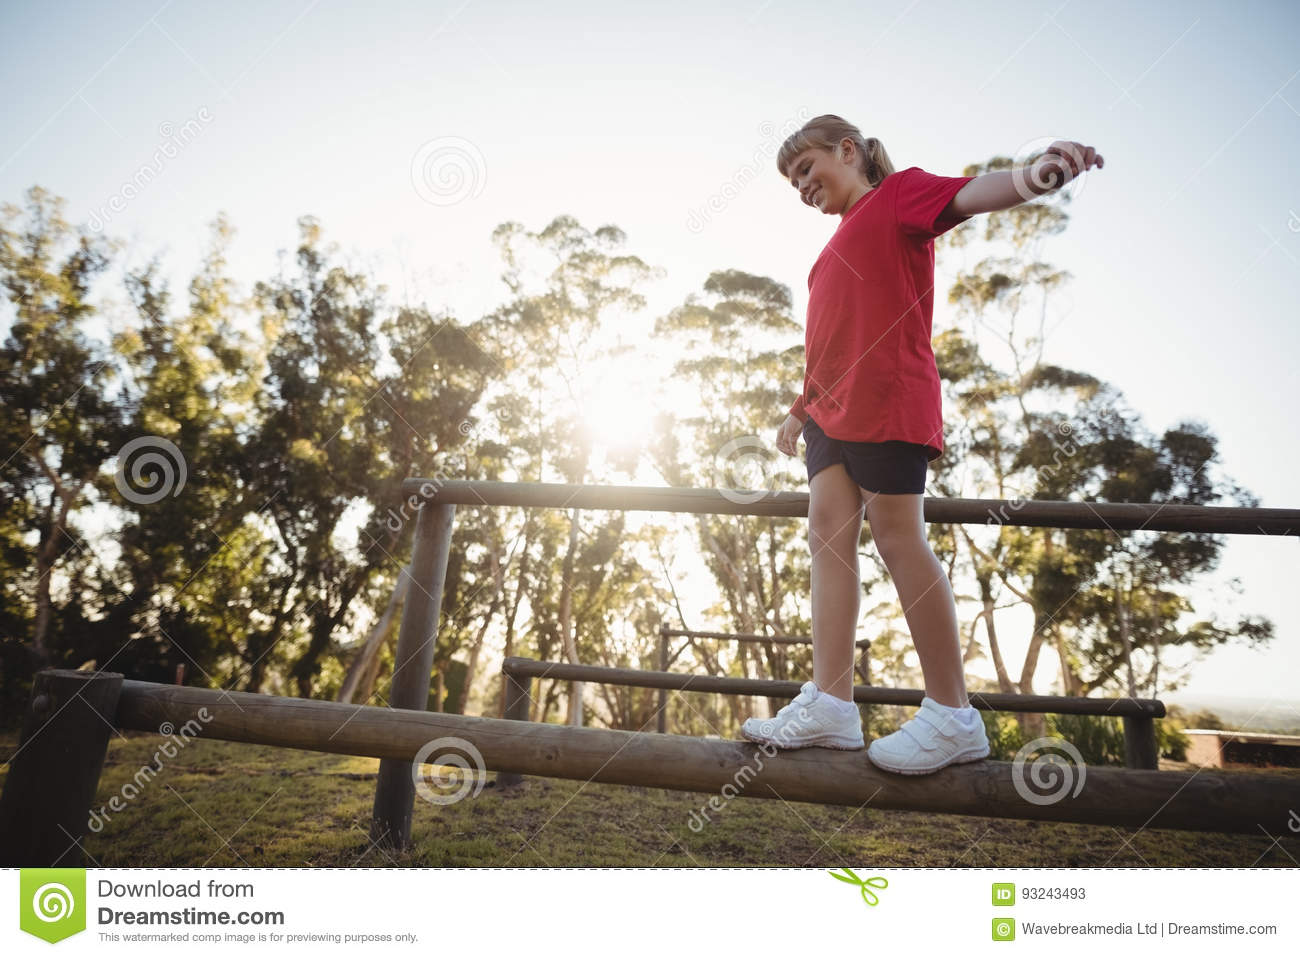 Girl walking on obstacle during obstacle course